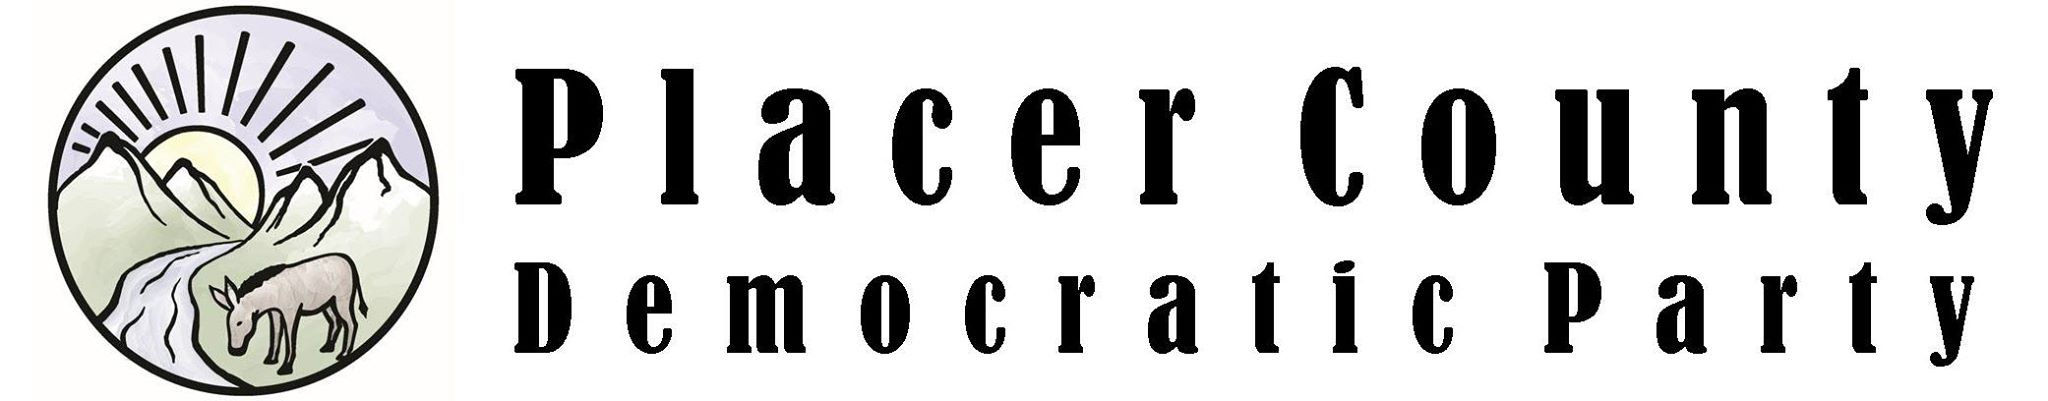 Placer County Democratic Party Federal Account